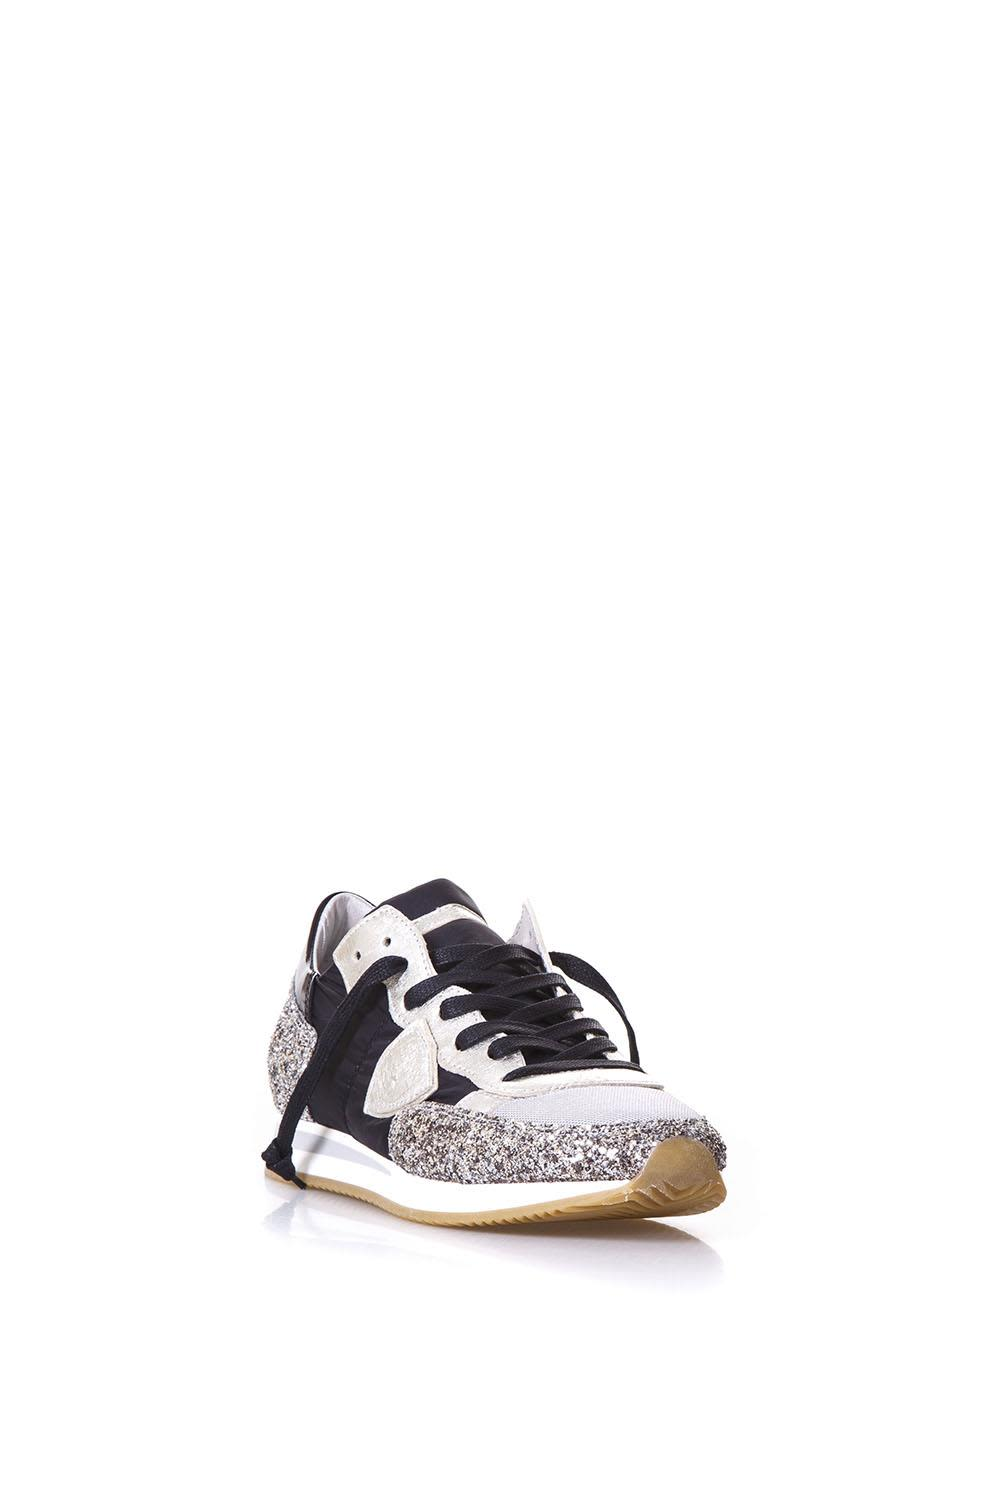 Philippe model Tropez Ld Basic Platinum Sneakers In Leather Outlet Many Kinds Of Outlet Clearance Store Cheap Sale Official Top Quality Cheap Price Brand New Unisex Cheap Online lybFr